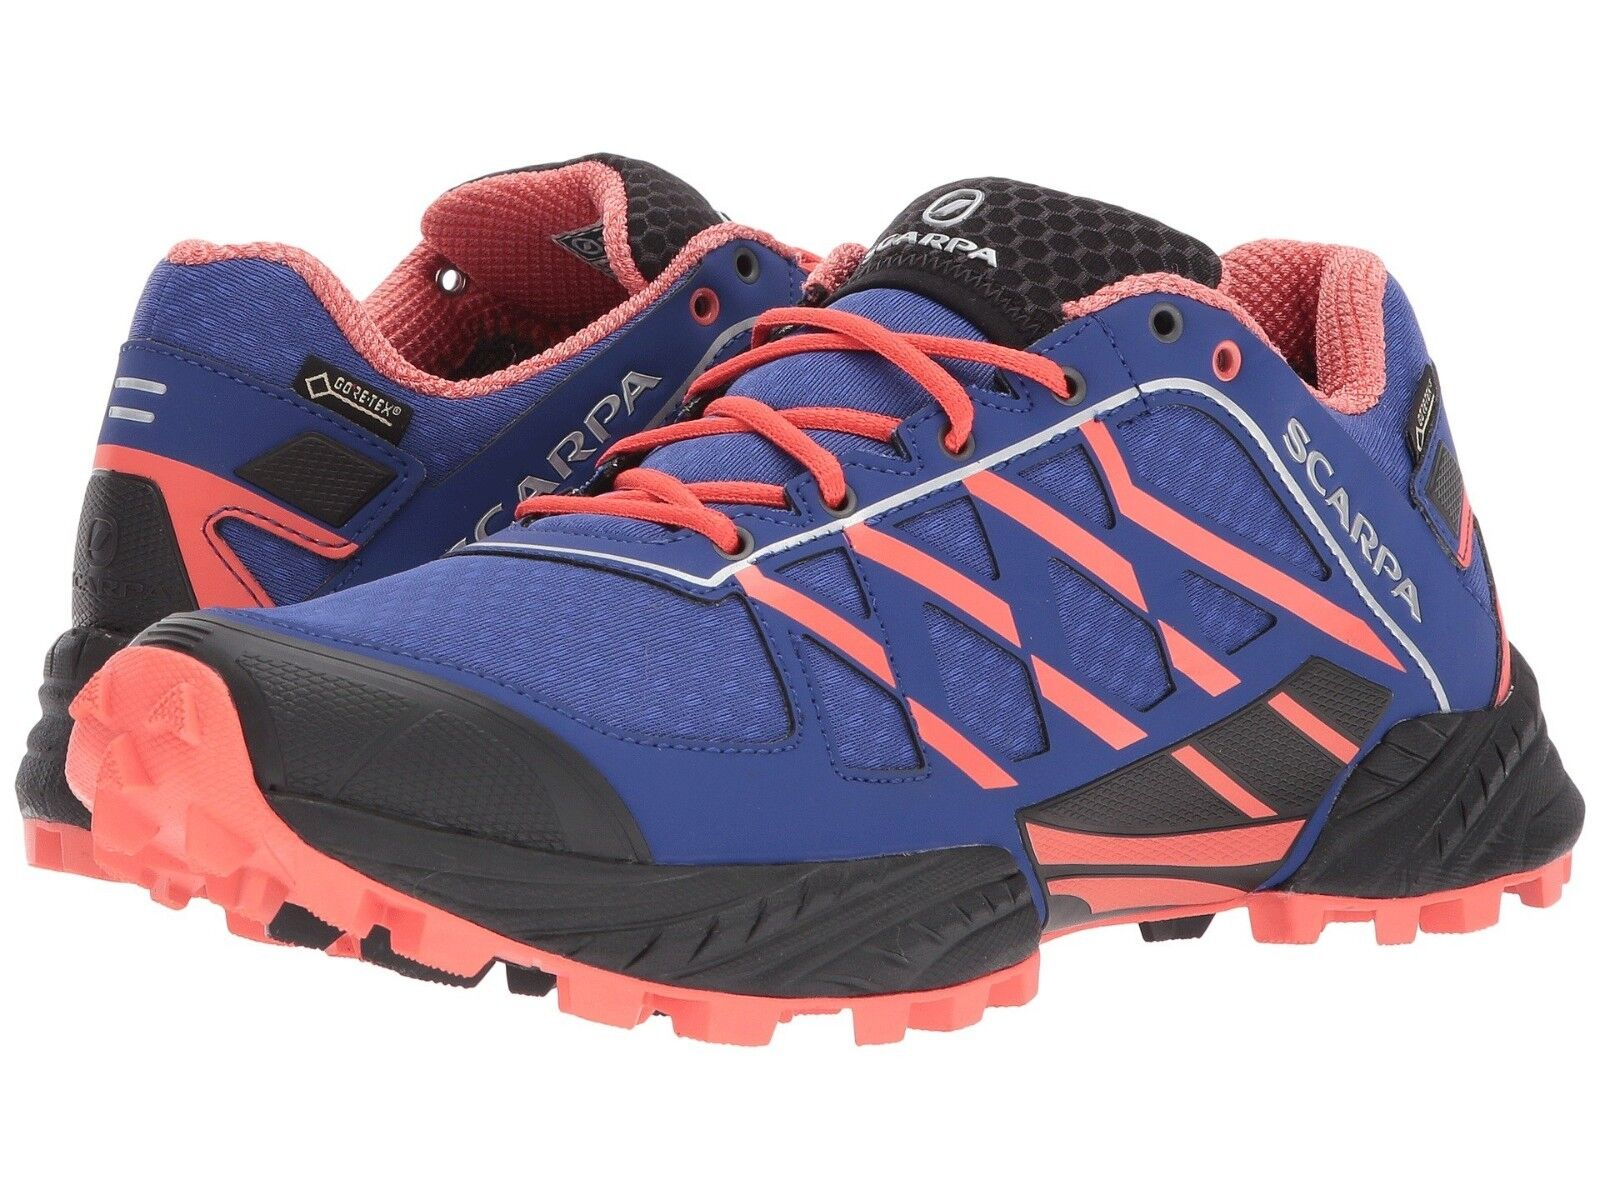 50% OFF  NEW WMN'S SCARPA NEUTRON  GTX TRAIL RUNNING SHOES , SZ 7 1 2, CLEMATIS